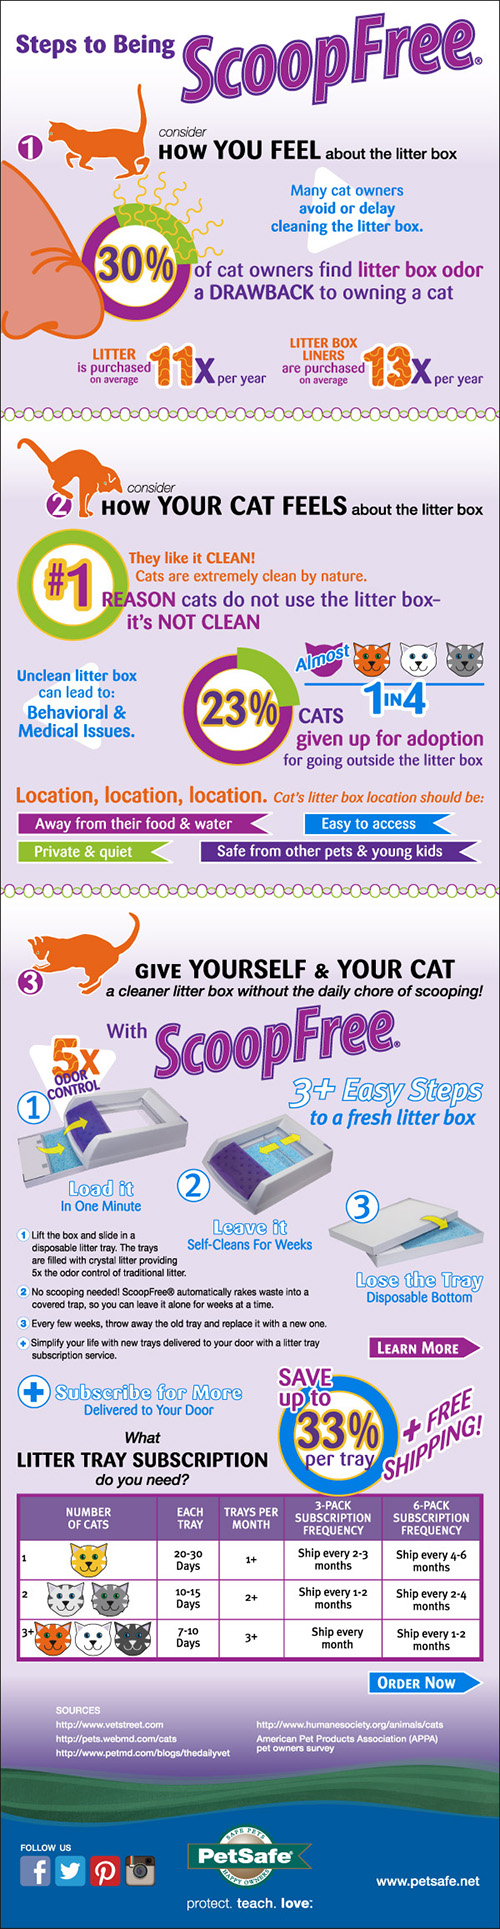 ScoopFree automatic litter box